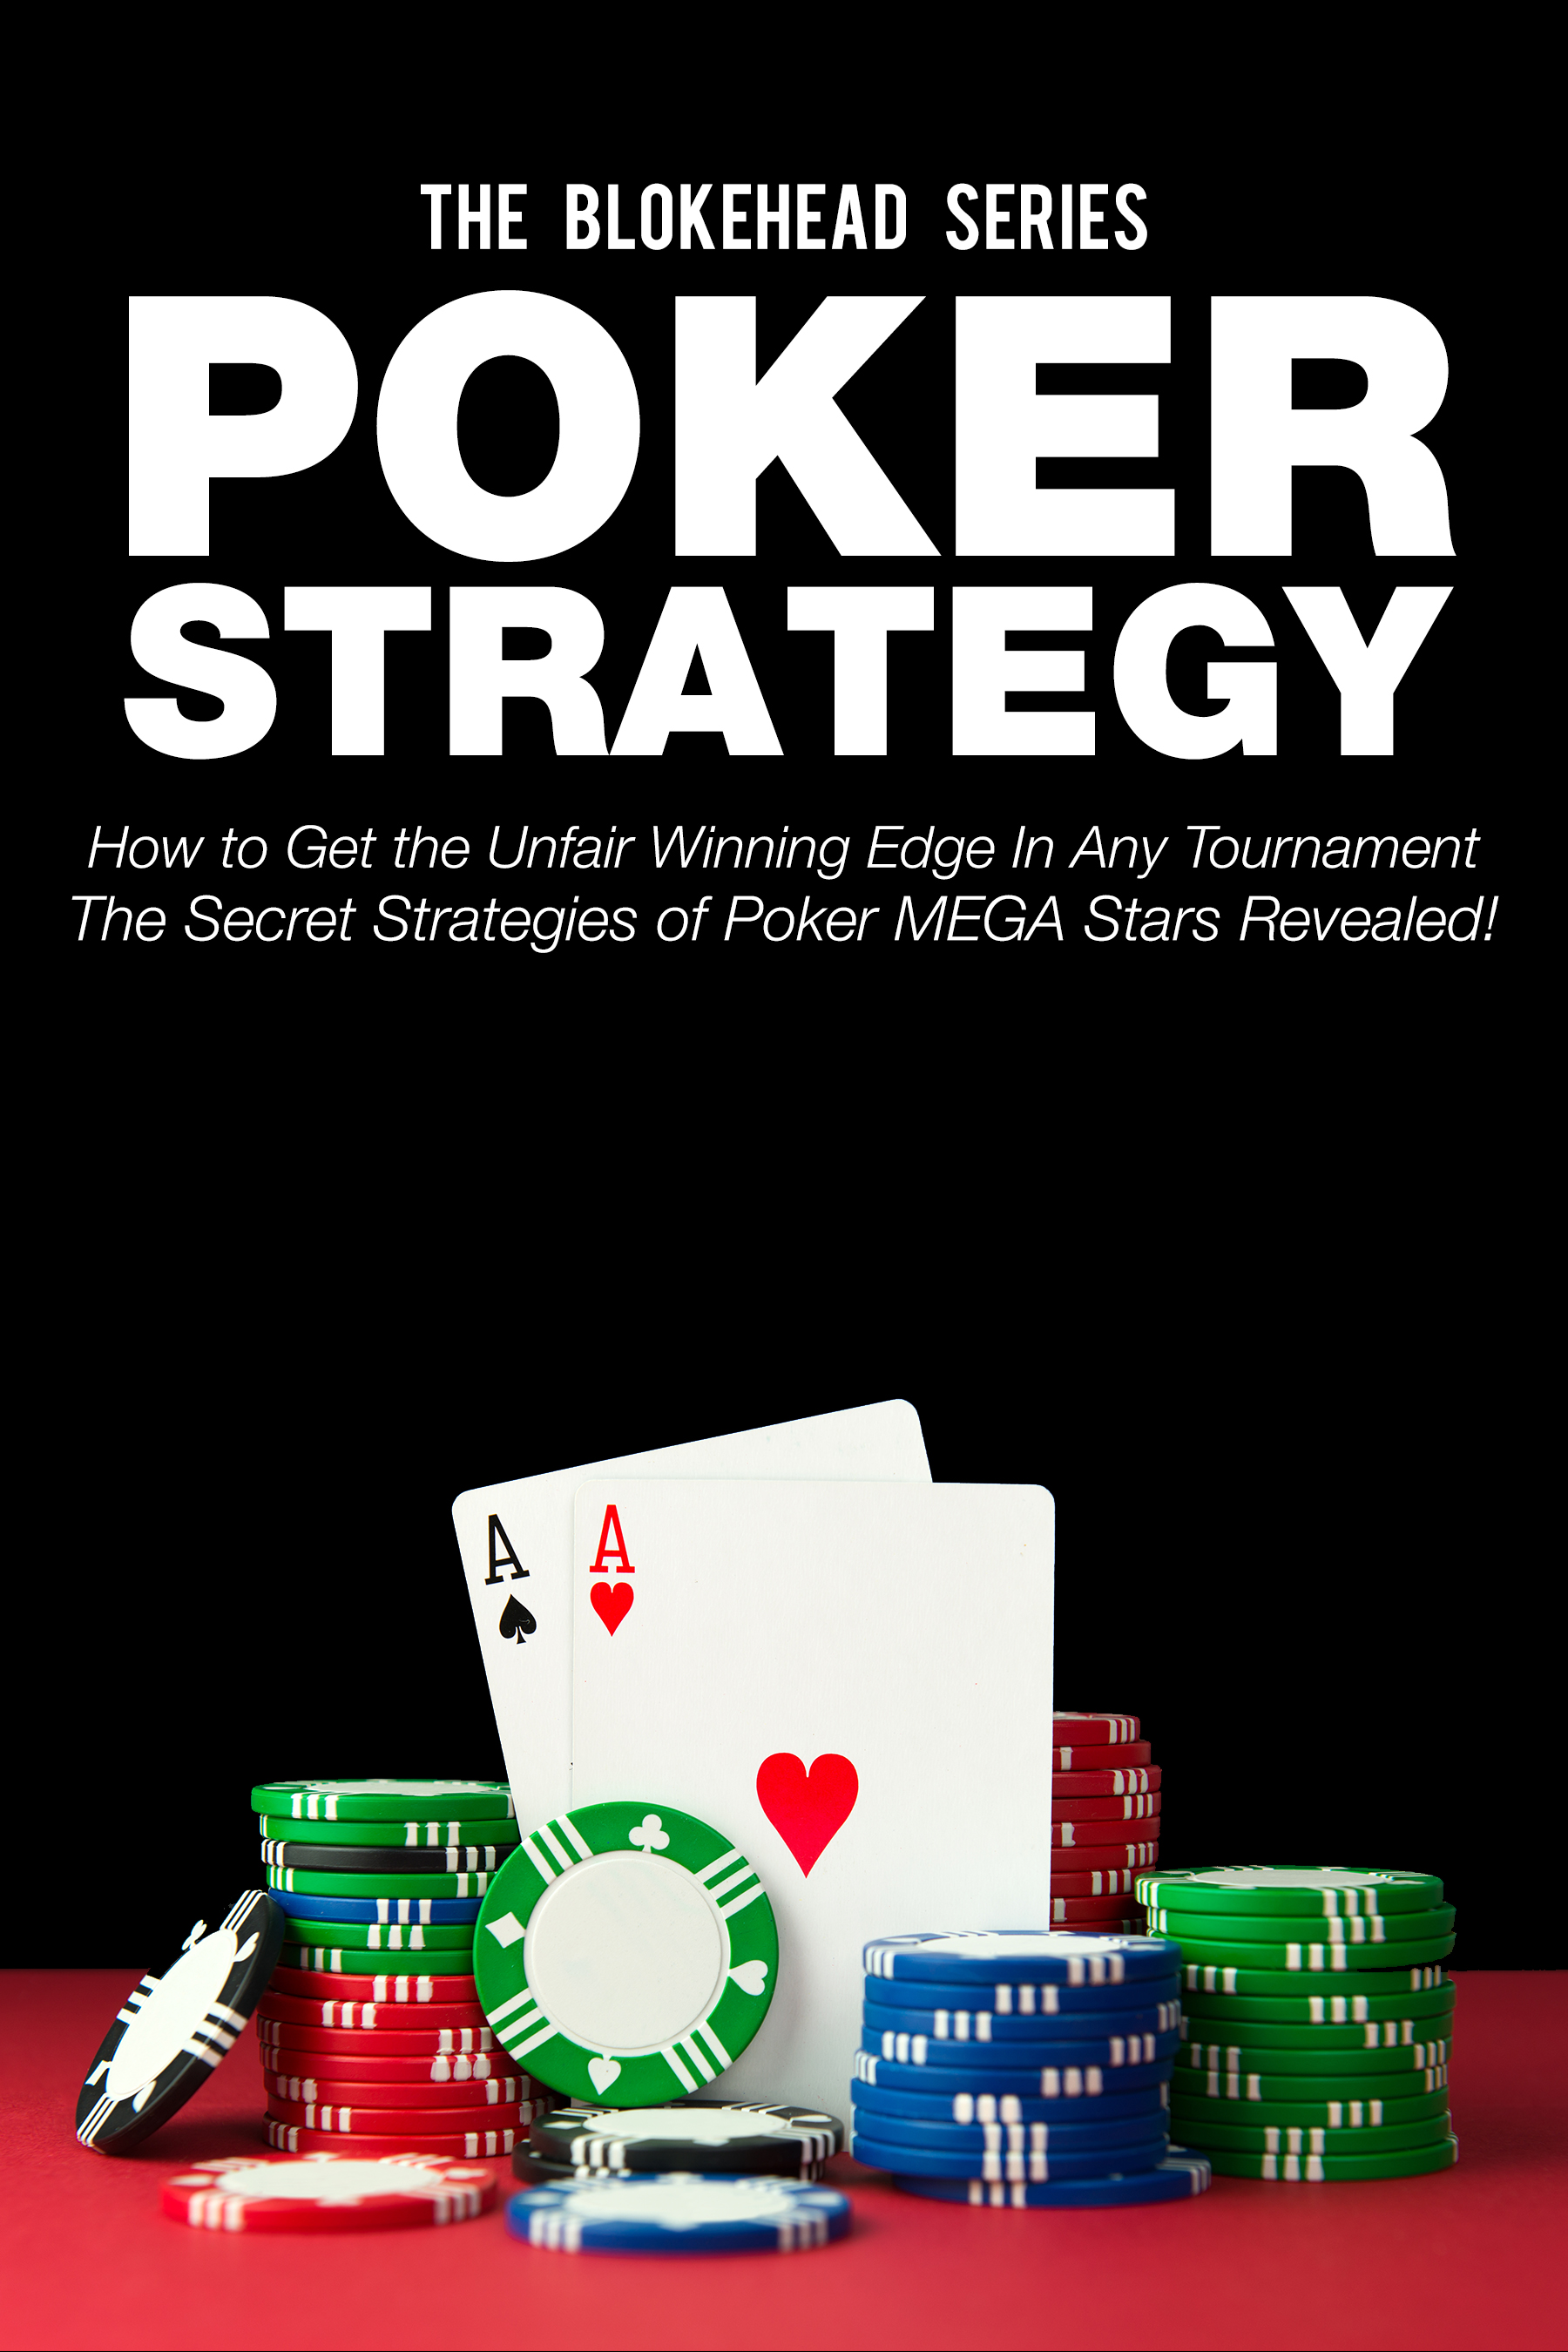 Poker strategy:how to get the unfair winning edge in any tournament.